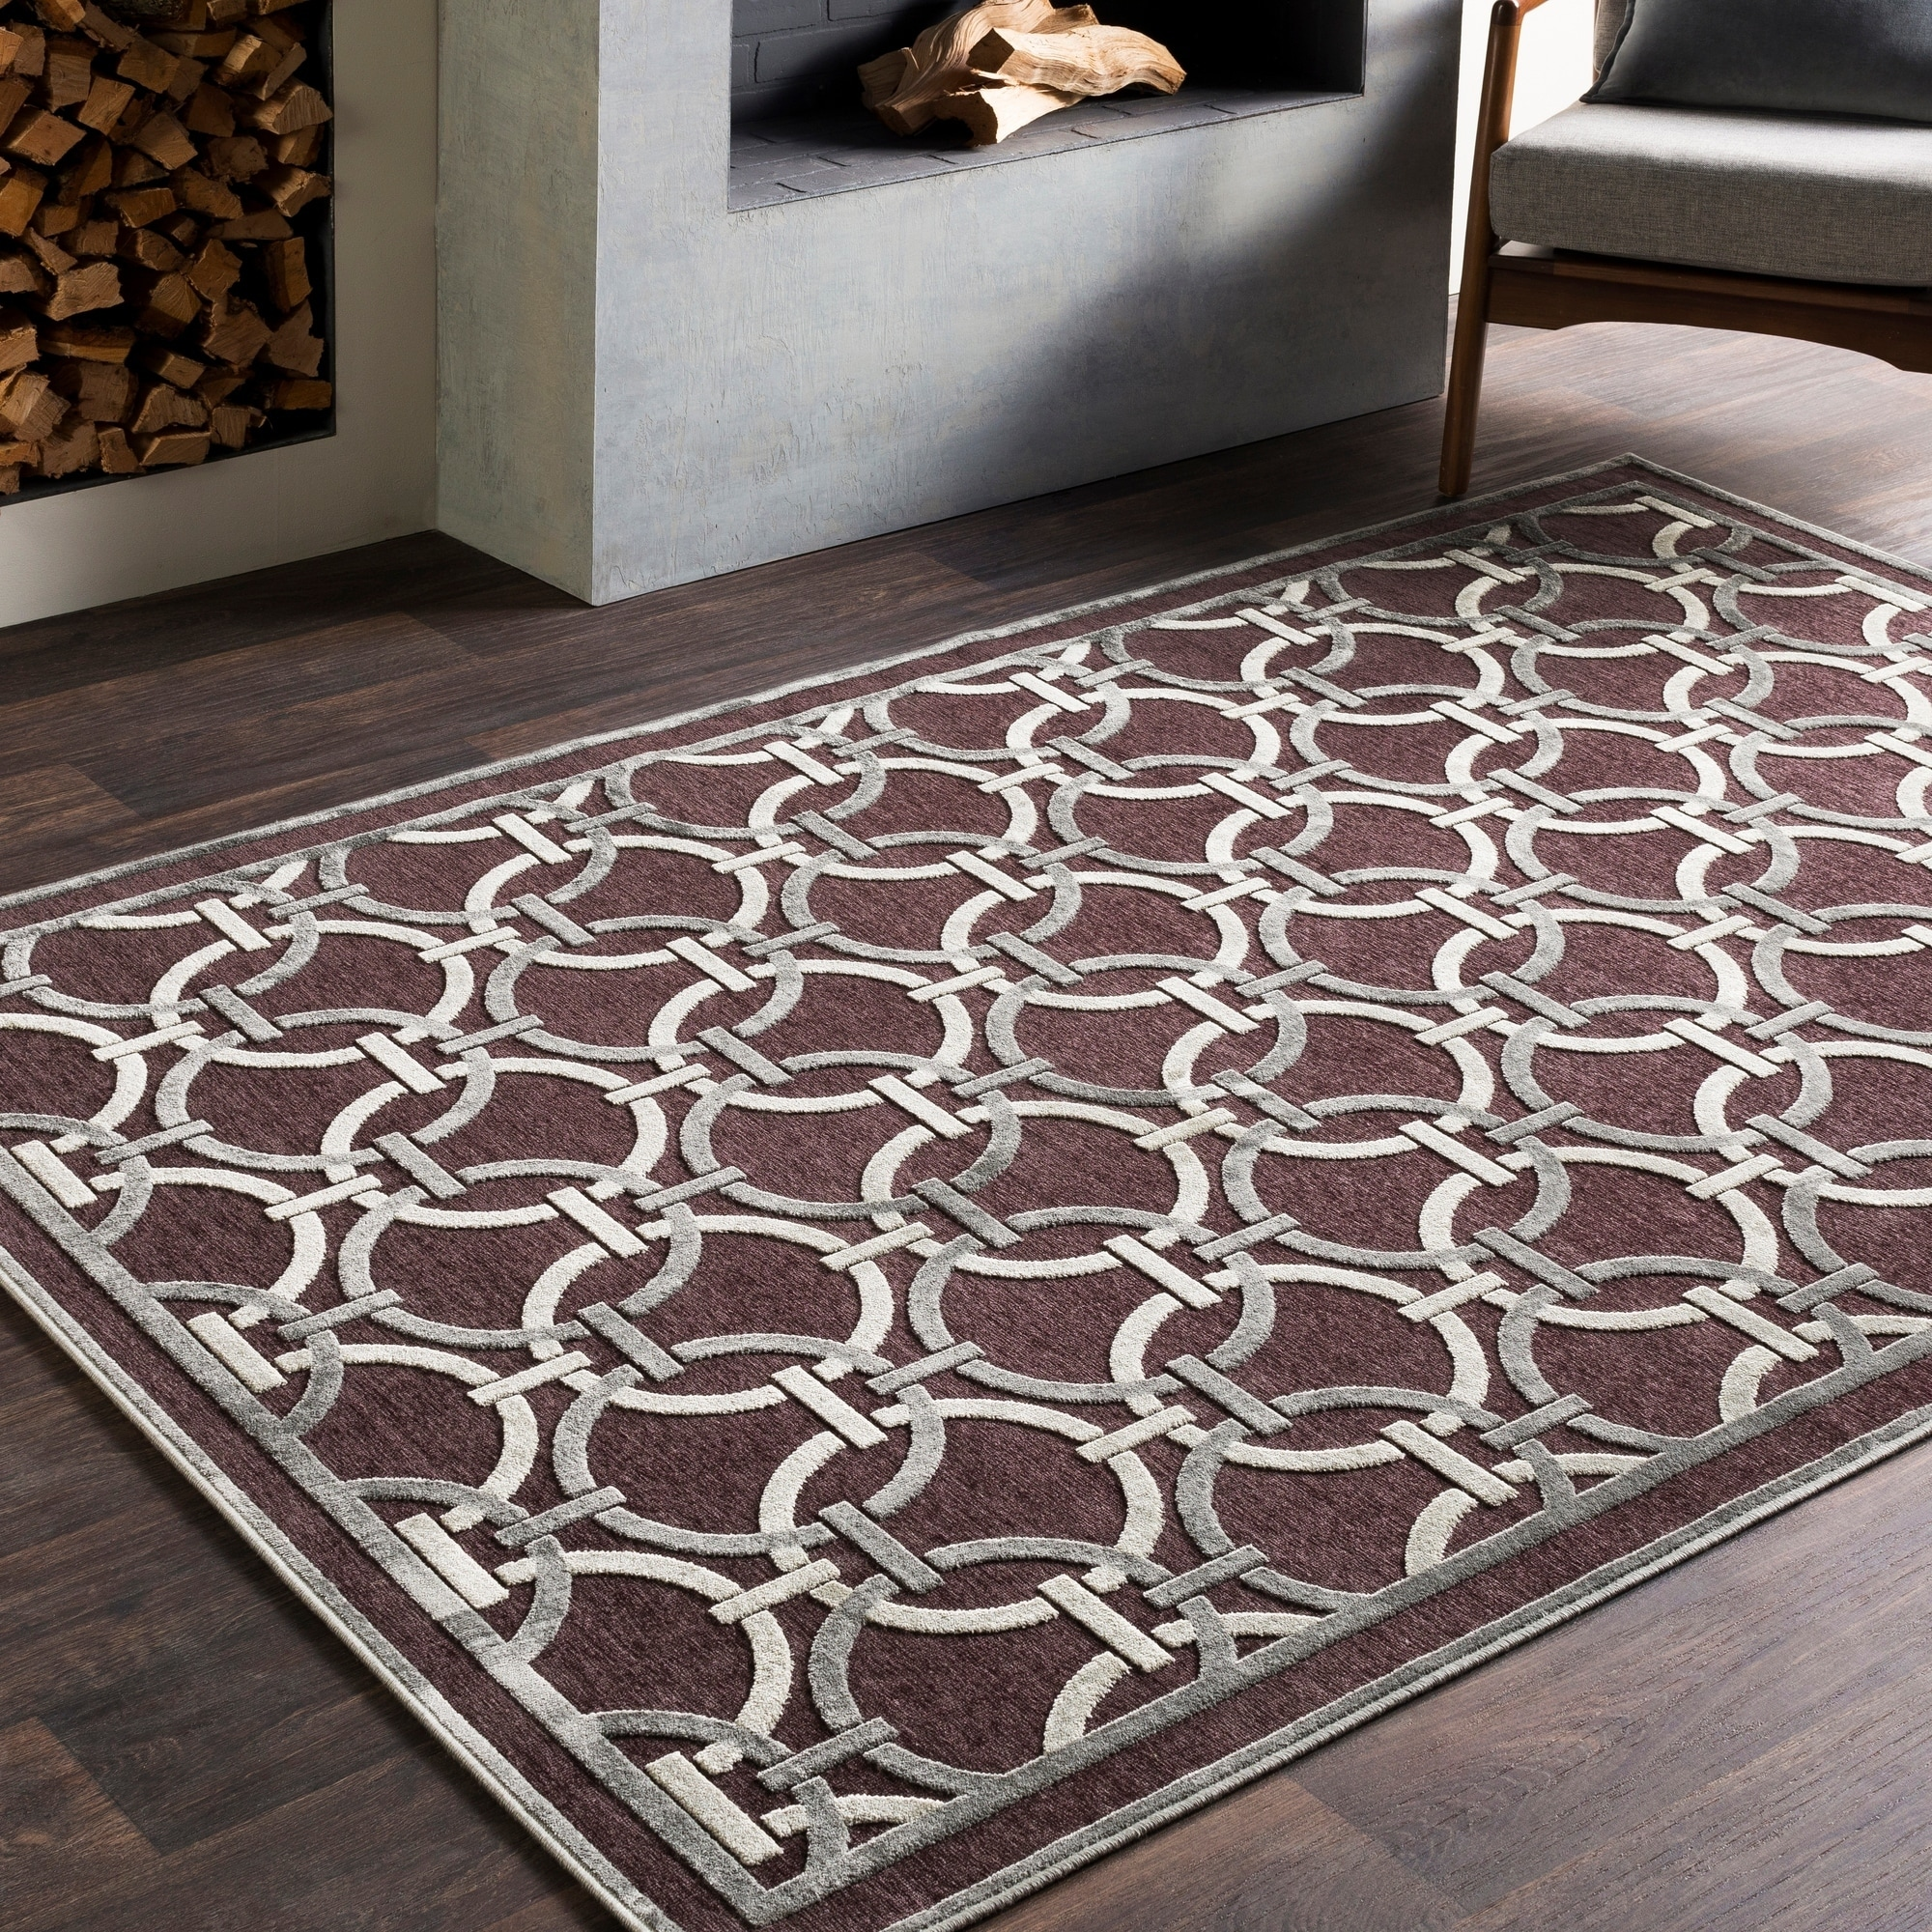 30 x 60 bath rug | home & garden | compare prices at nextag